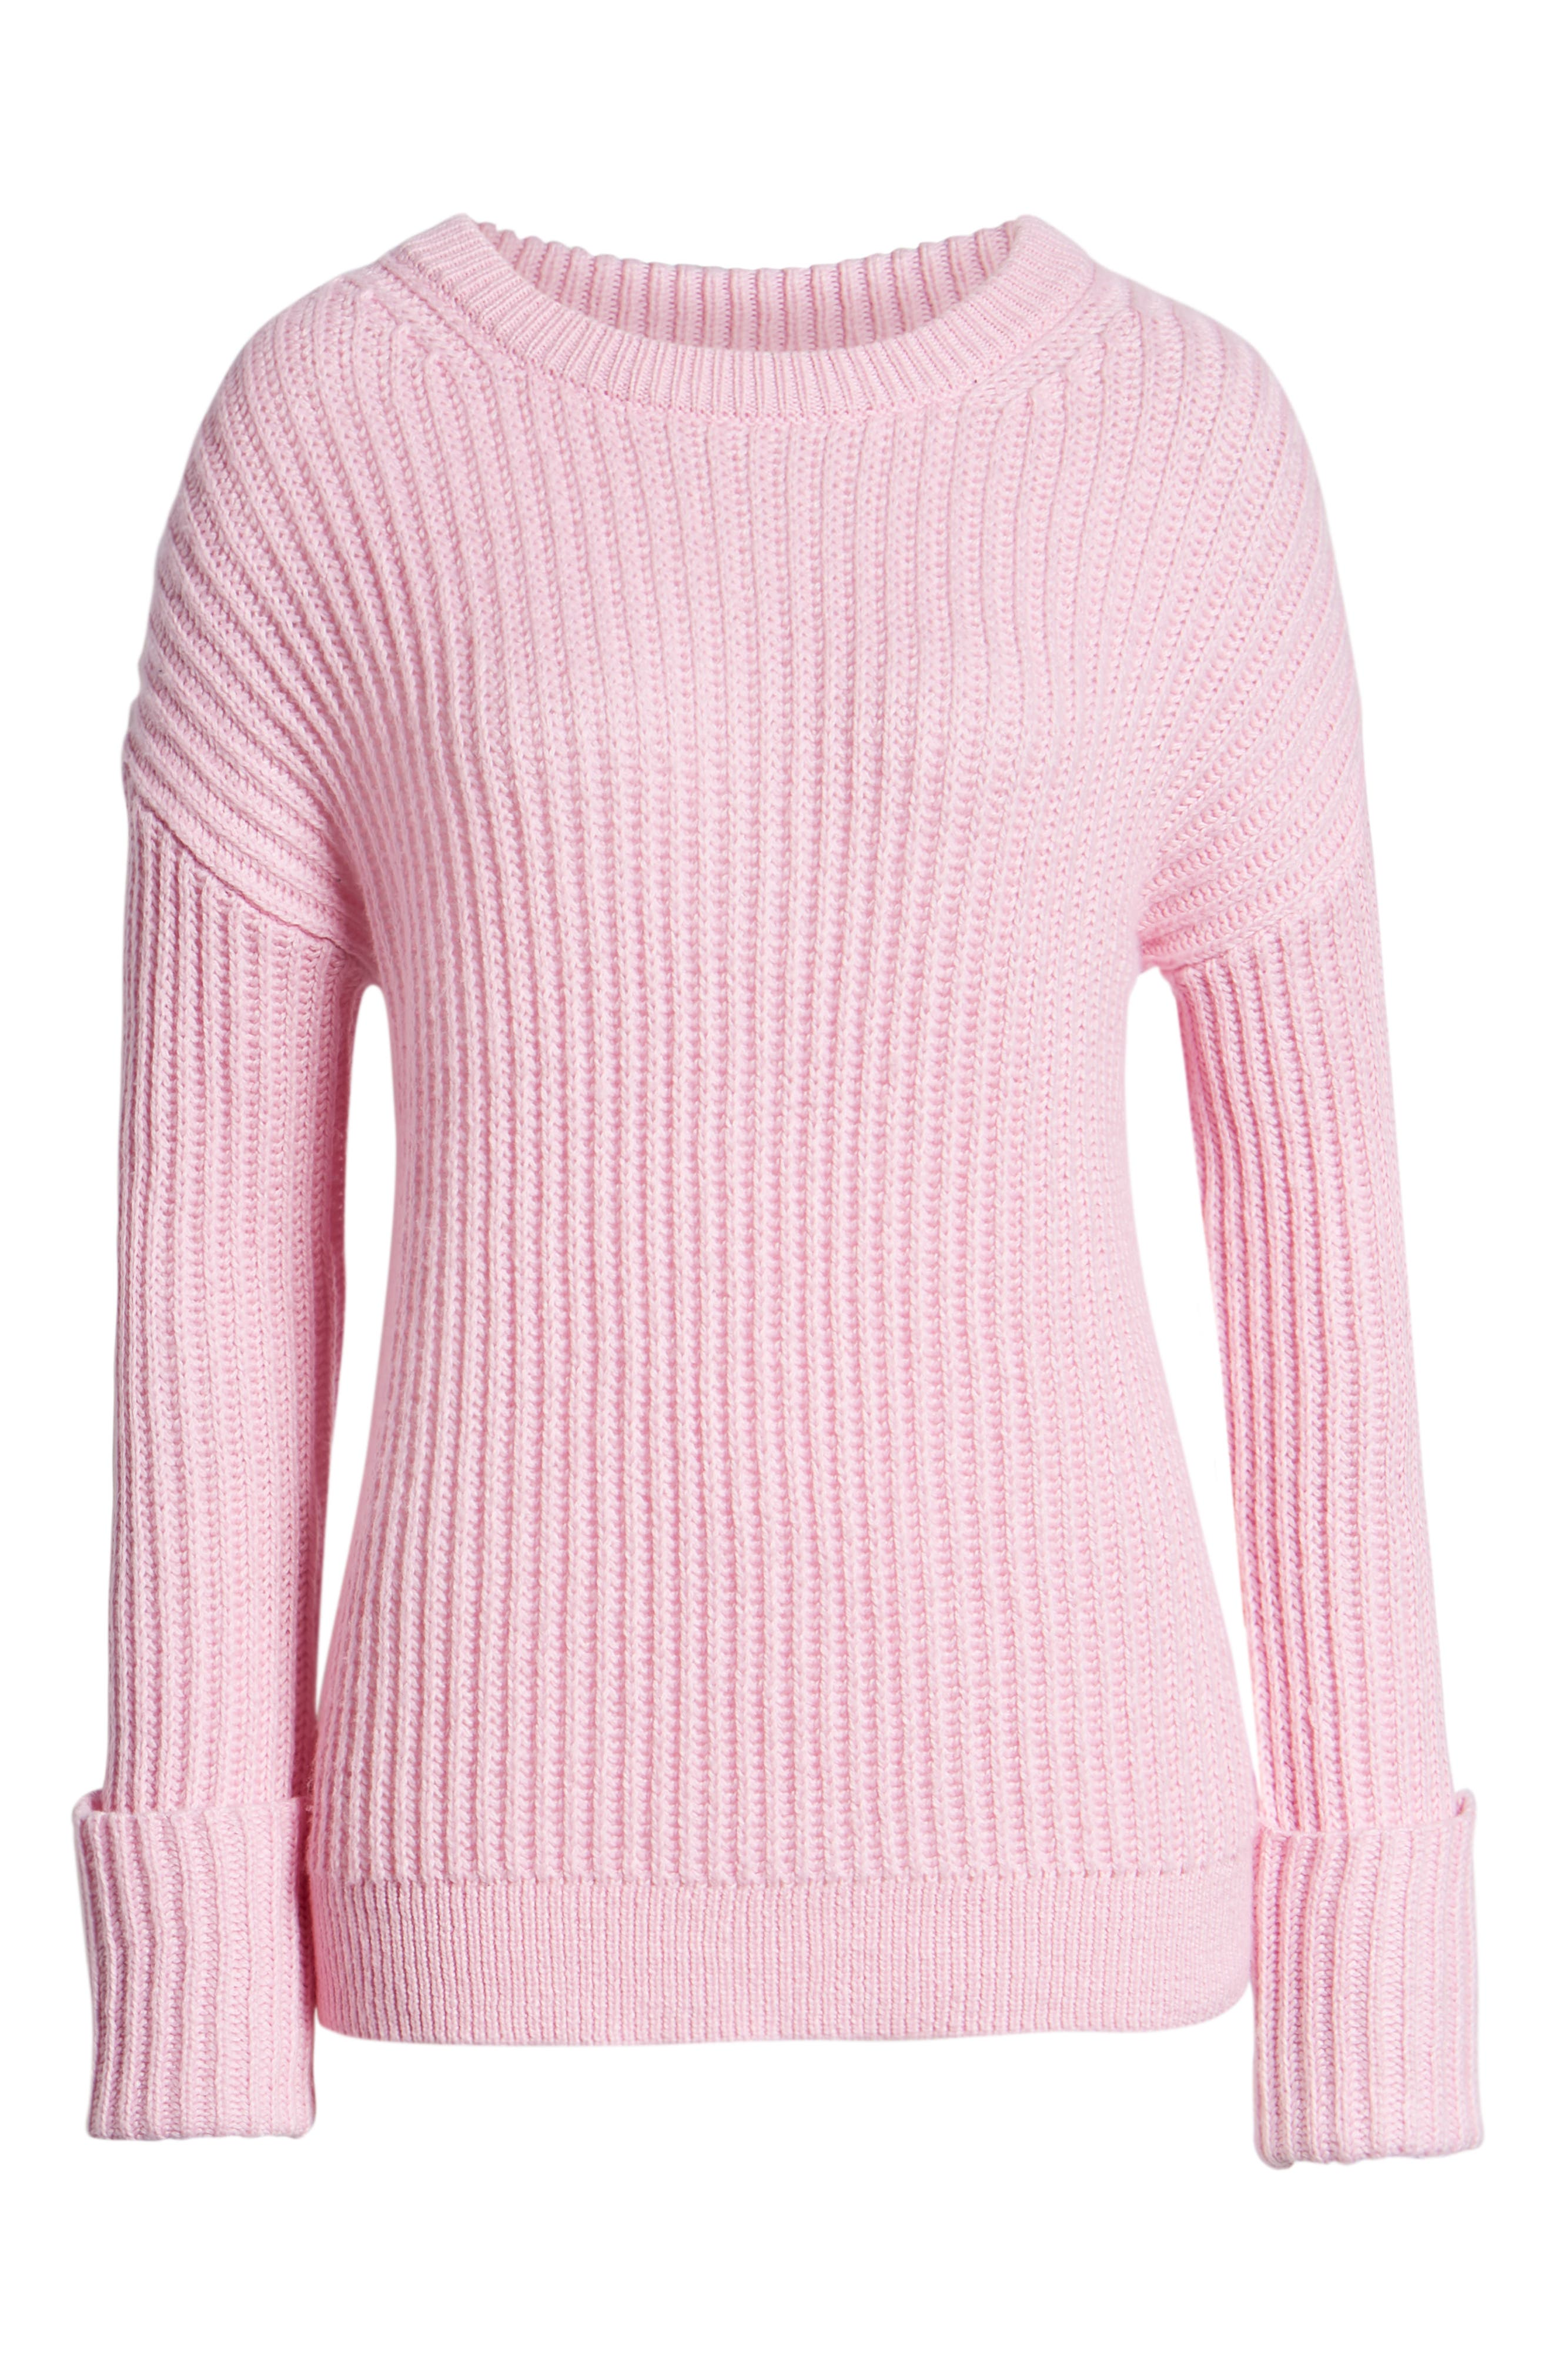 CASLON<SUP>®</SUP>, Cuffed Sleeve Shaker Sweater, Alternate thumbnail 6, color, PINK FLOWER